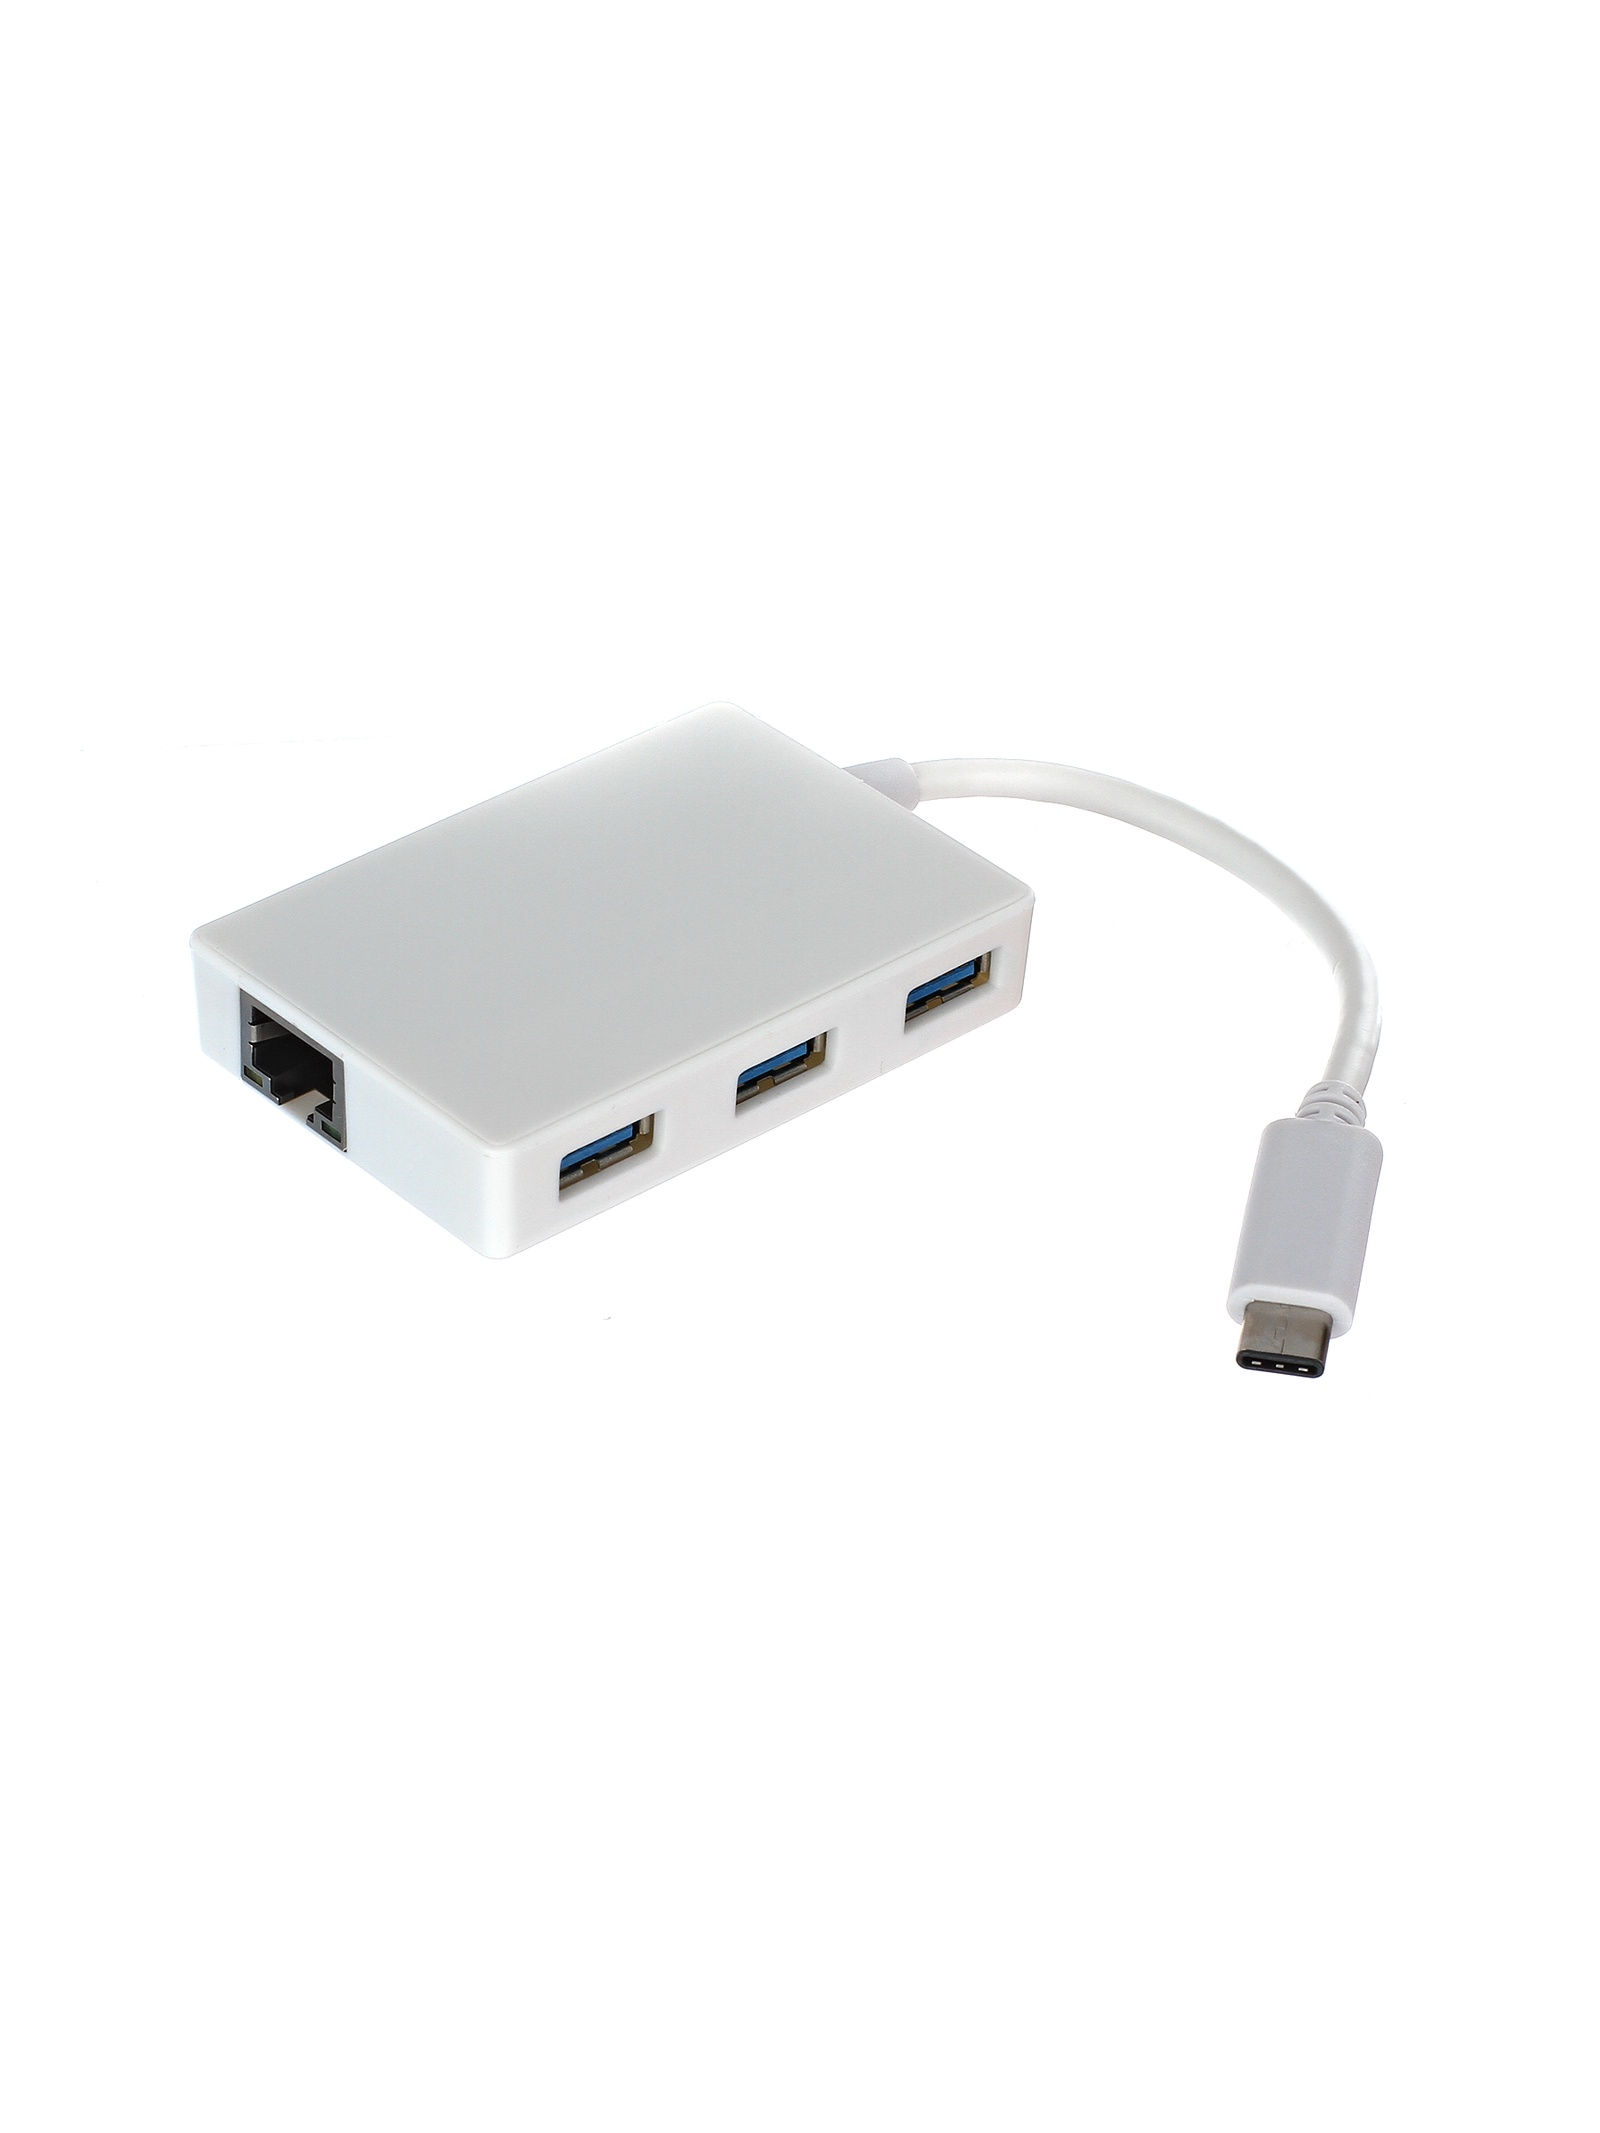 Кабель-концентратор USB 3.1 Type-C-Male --> 3 port USB3.0 HUB + microUSB-type B-Female + LAN VCOM переходник vcom usb 3 1 type c lan rj45 du320